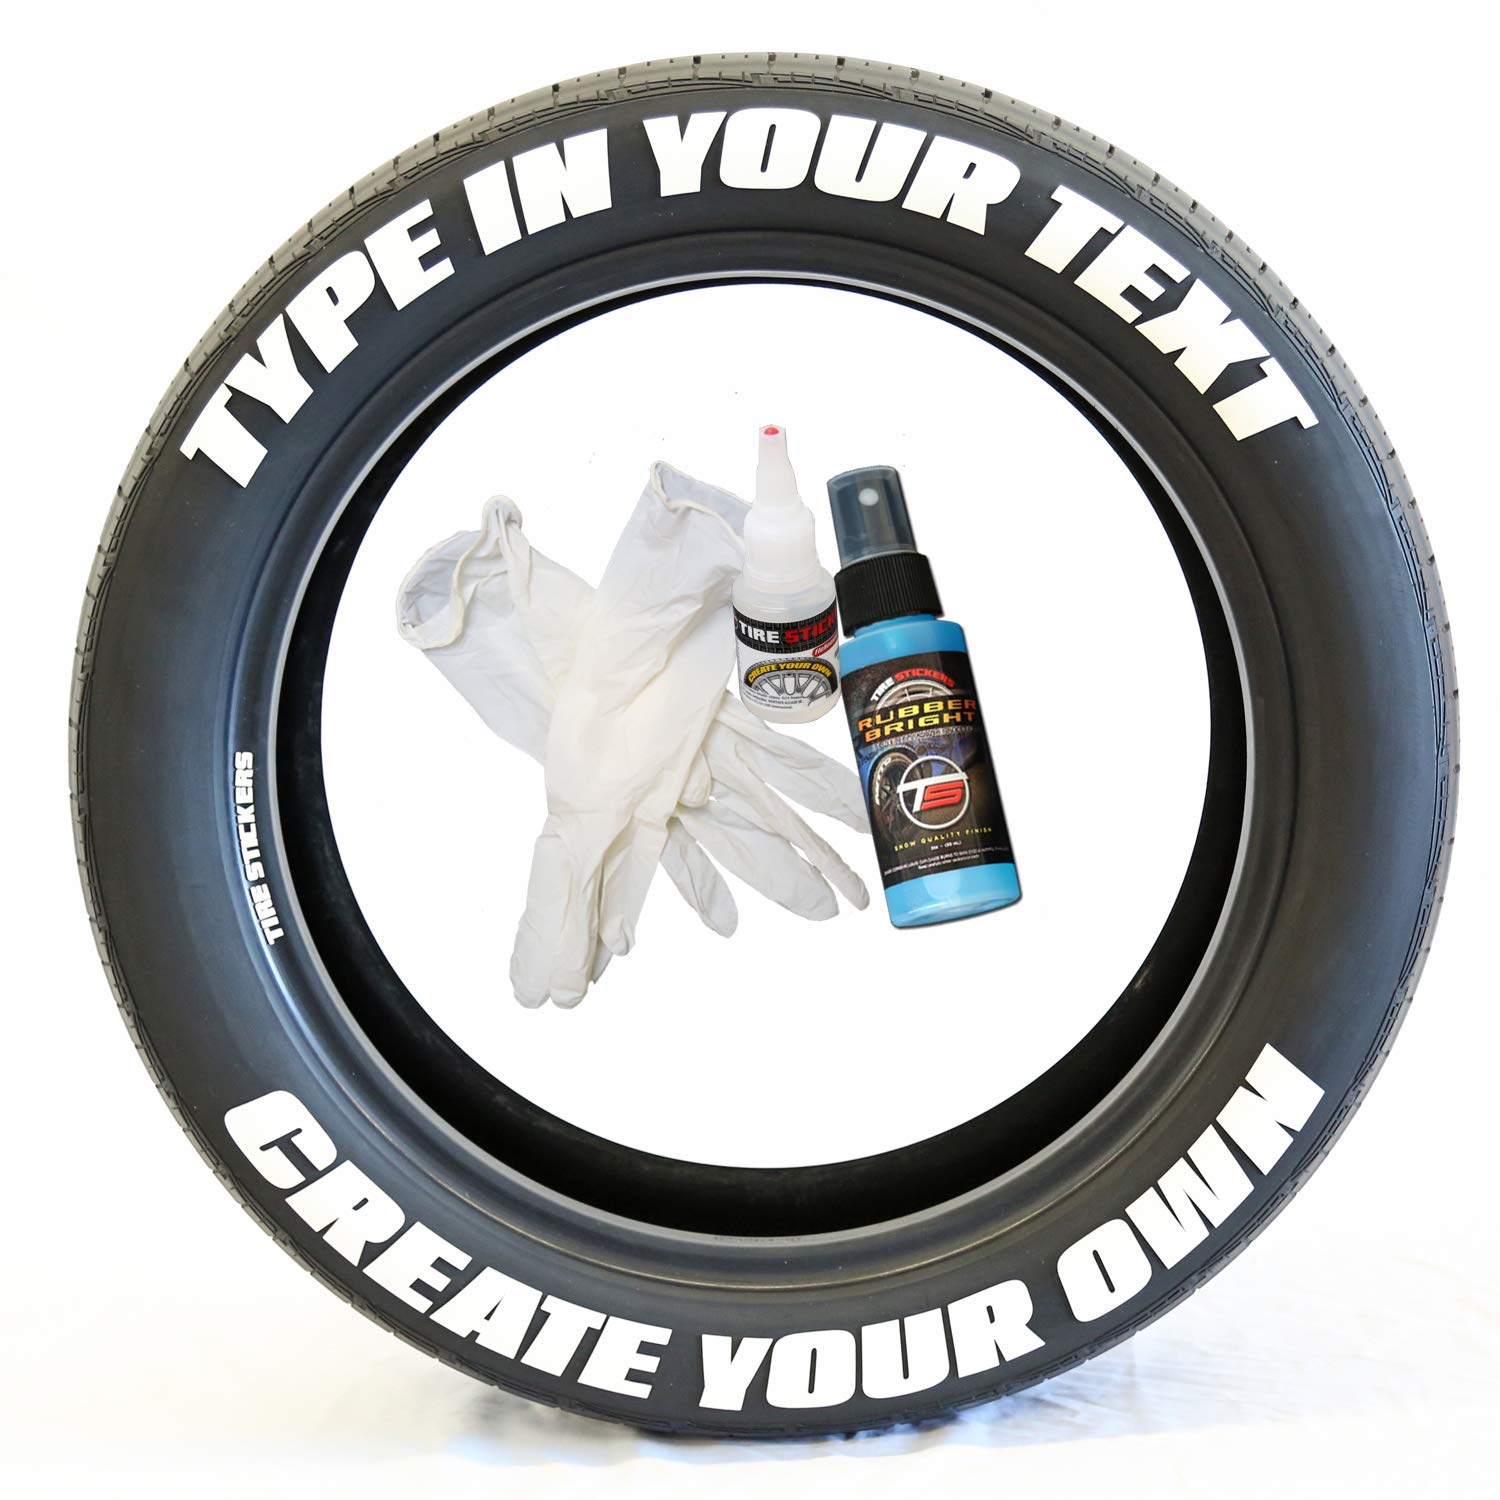 Tire stickers create your own custom tire lettering add on accessory diy easy glue 2oz touch up cleaner custom sizing white pack of 8